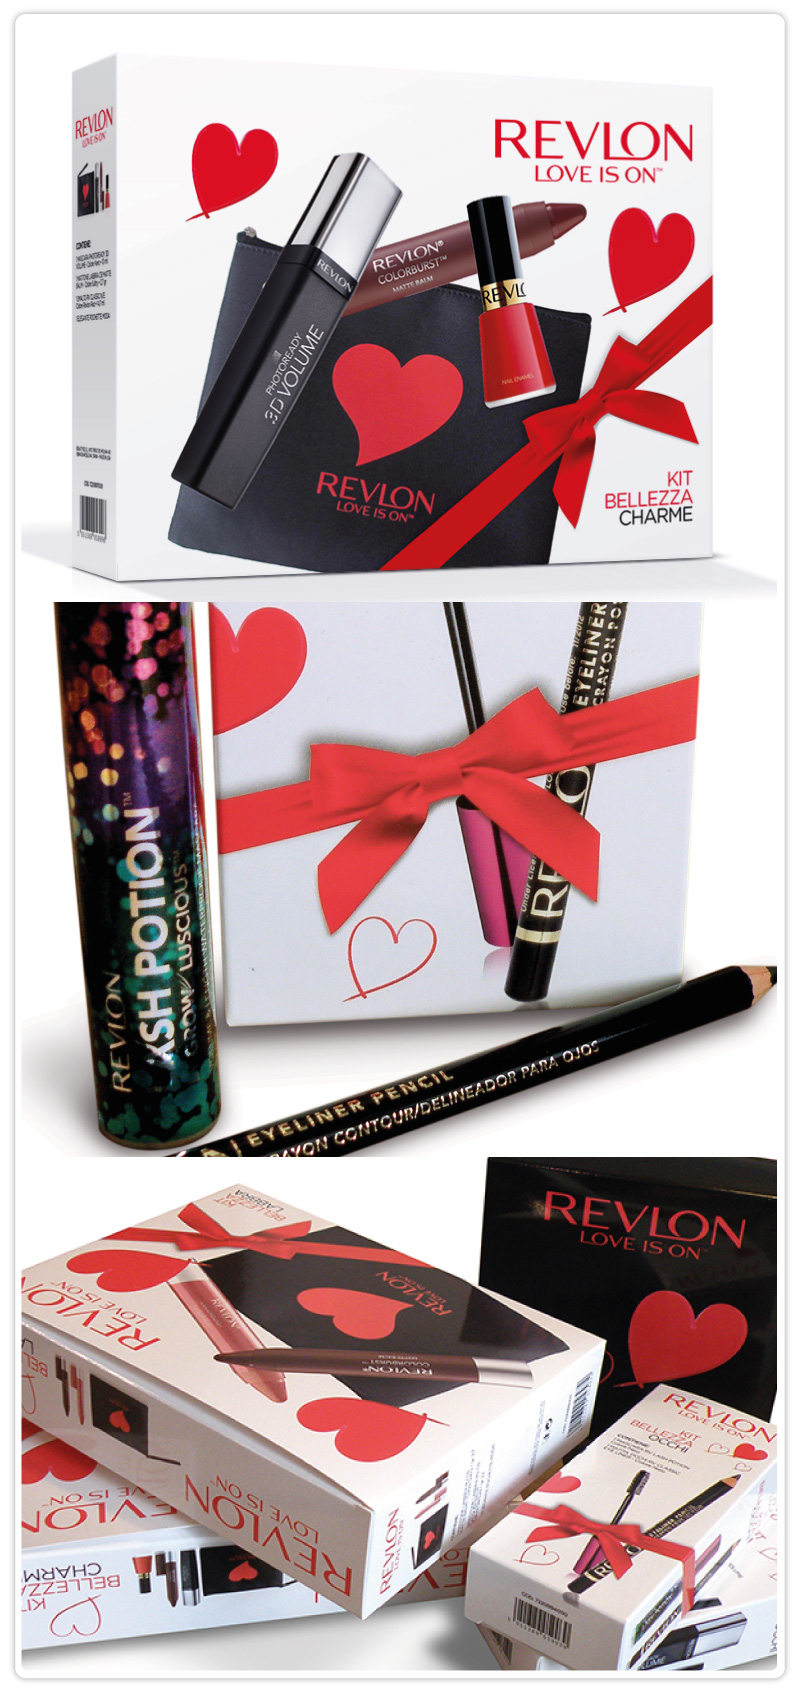 Revlon packaging